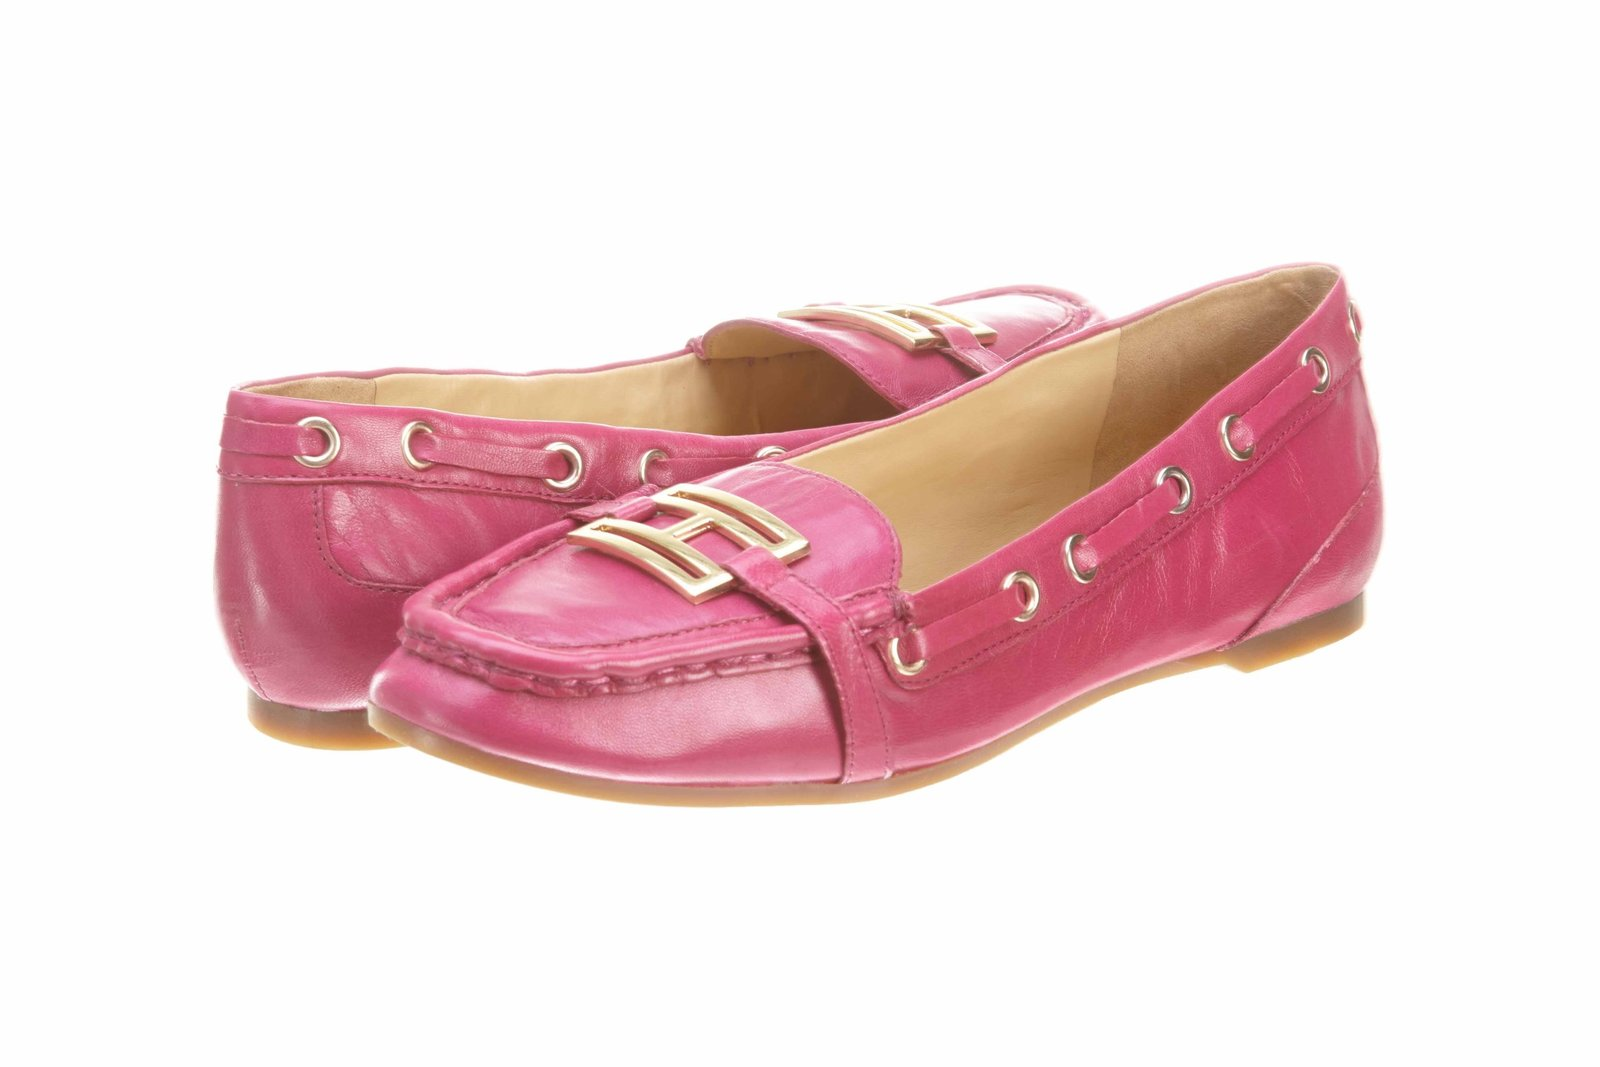 bbdccfd93 Tommy Hilfiger Shoes  1 customer review and 38 listings